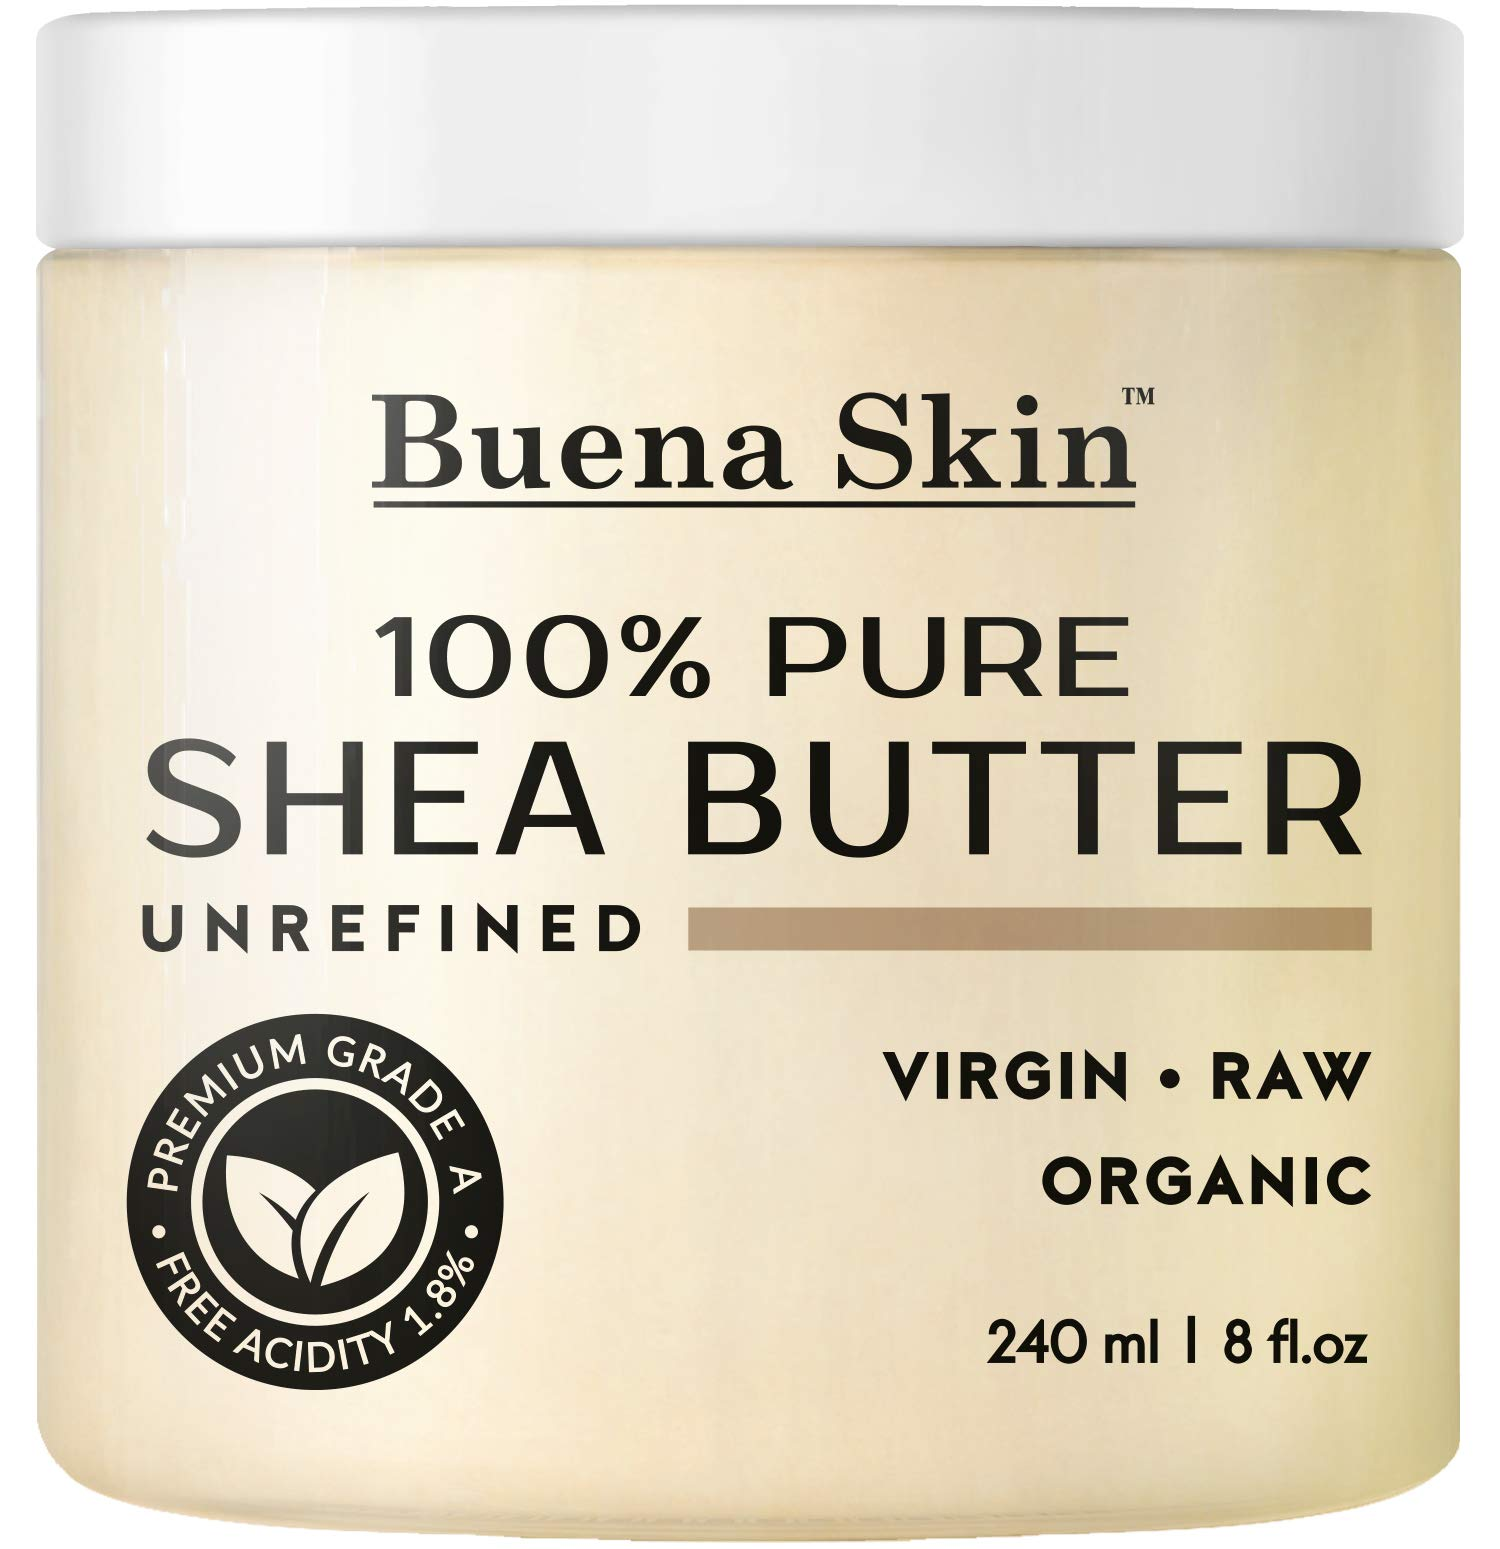 Buena Skin Pure Shea Butter - Raw African Organic Grade A Ivory Unrefined, Cold-Pressed - Great to Use Alone or DIY Body Butters, Lotions, Soaps, Eczema & Stretch Mark Products, from Ghana 8 oz by Buena Skin